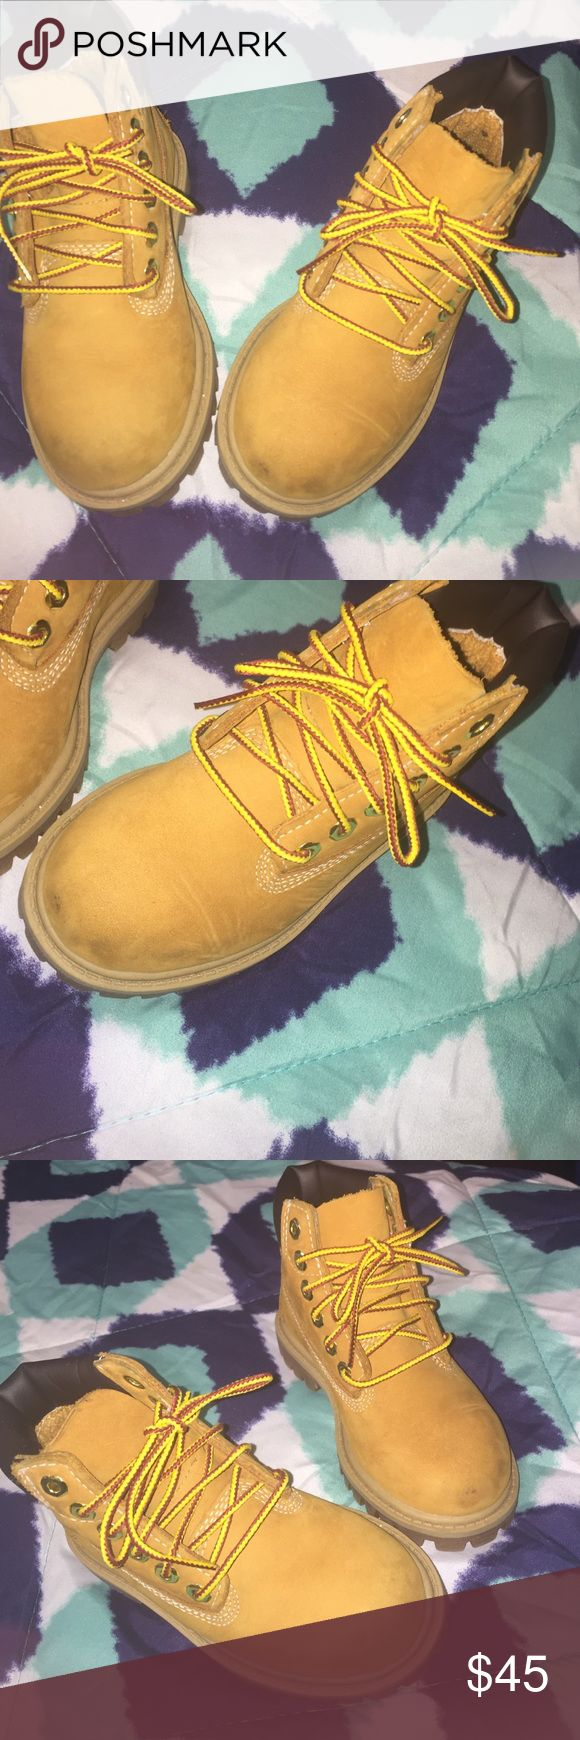 Toddler butter timberland Gently used butter timberland boots for toddler Timberland Shoes Boots